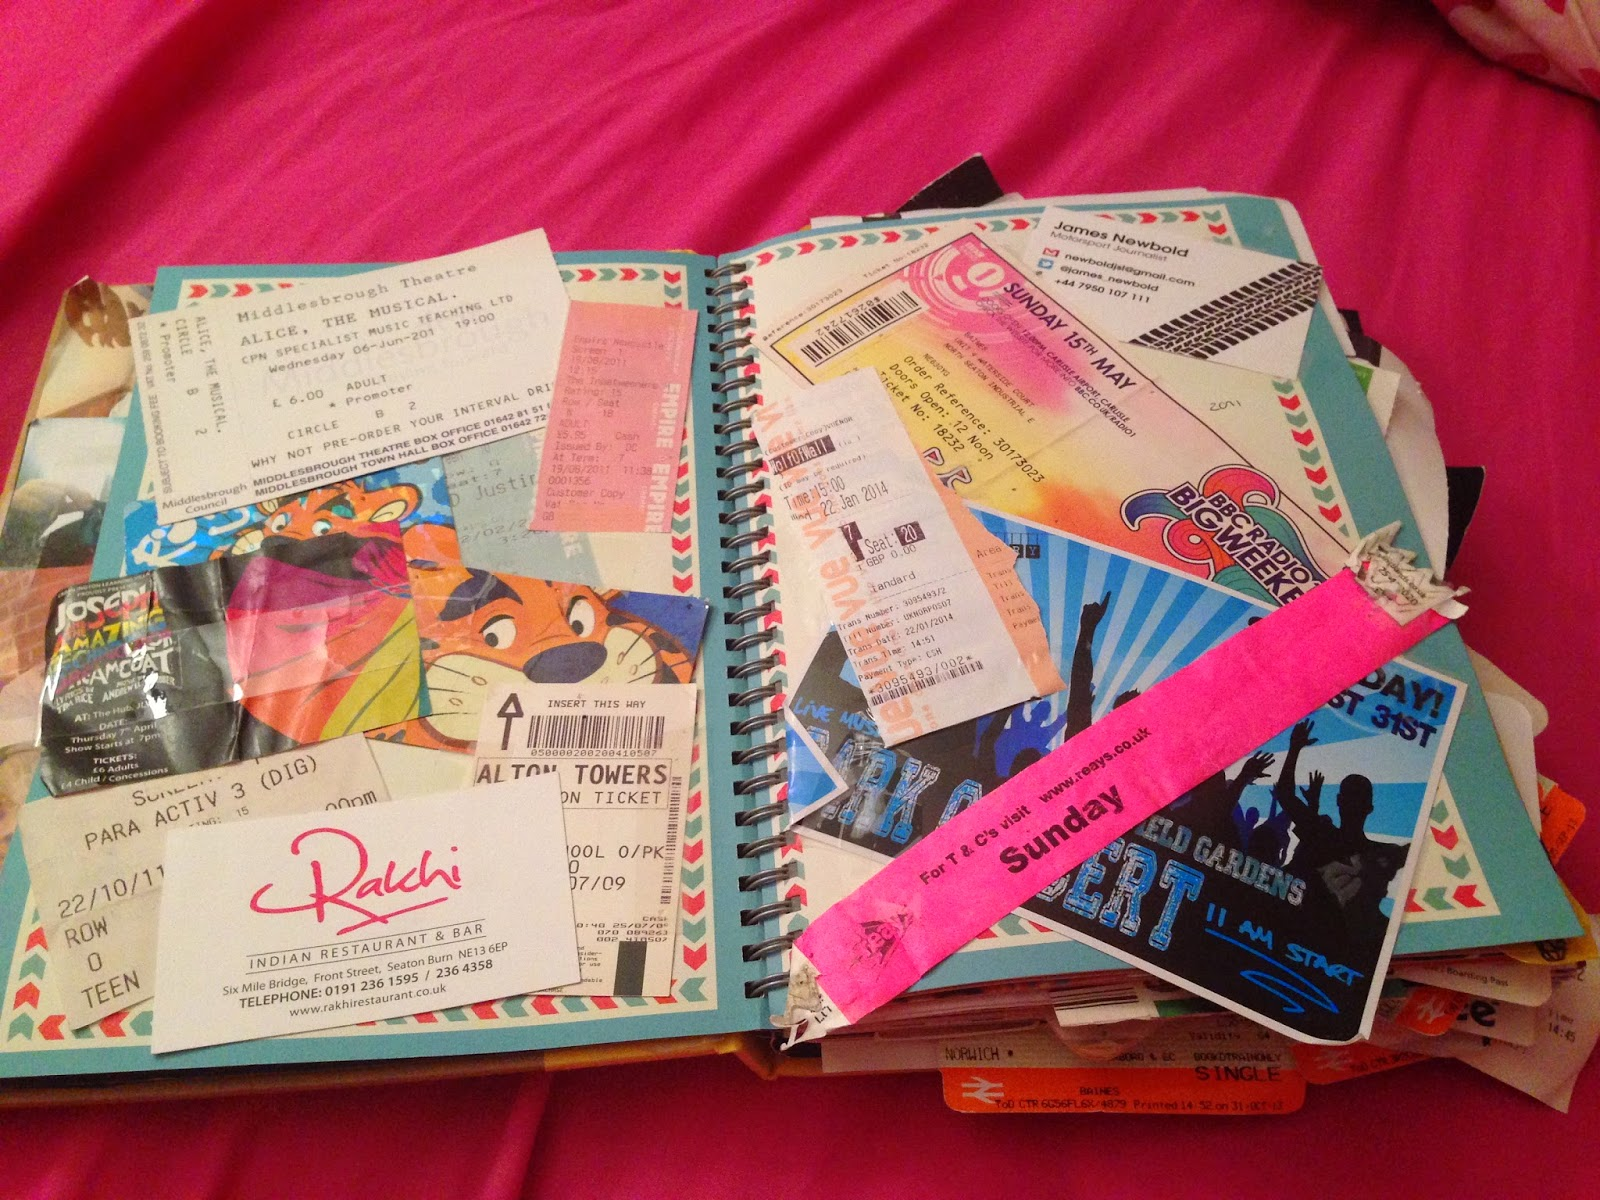 Justin bieber scrapbook ideas -  Including The Musical My Cousin Was In Haven Holiday Park Passes To Get Into The Activities Centre Thing Cinema Tickets For The Justin Bieber Movie